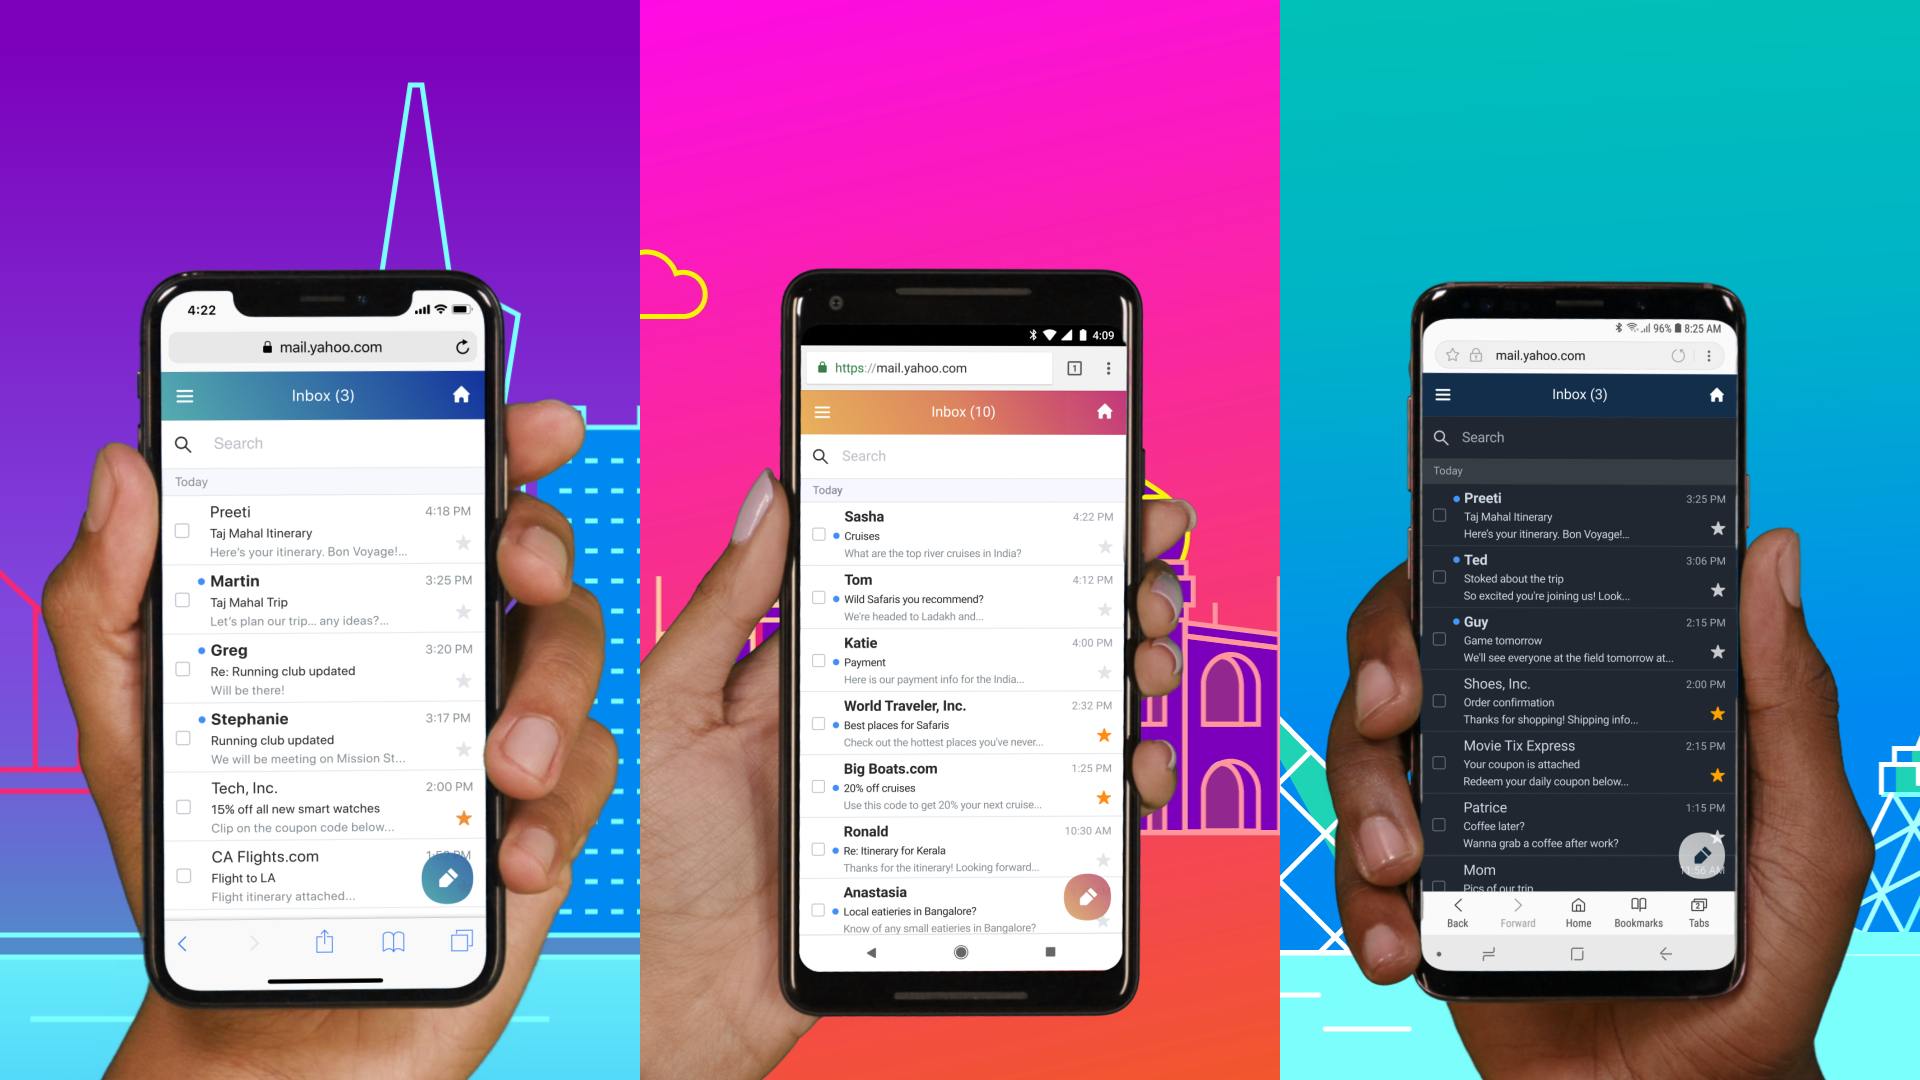 Update: APK download] Yahoo introduces new Mail app for Android Go